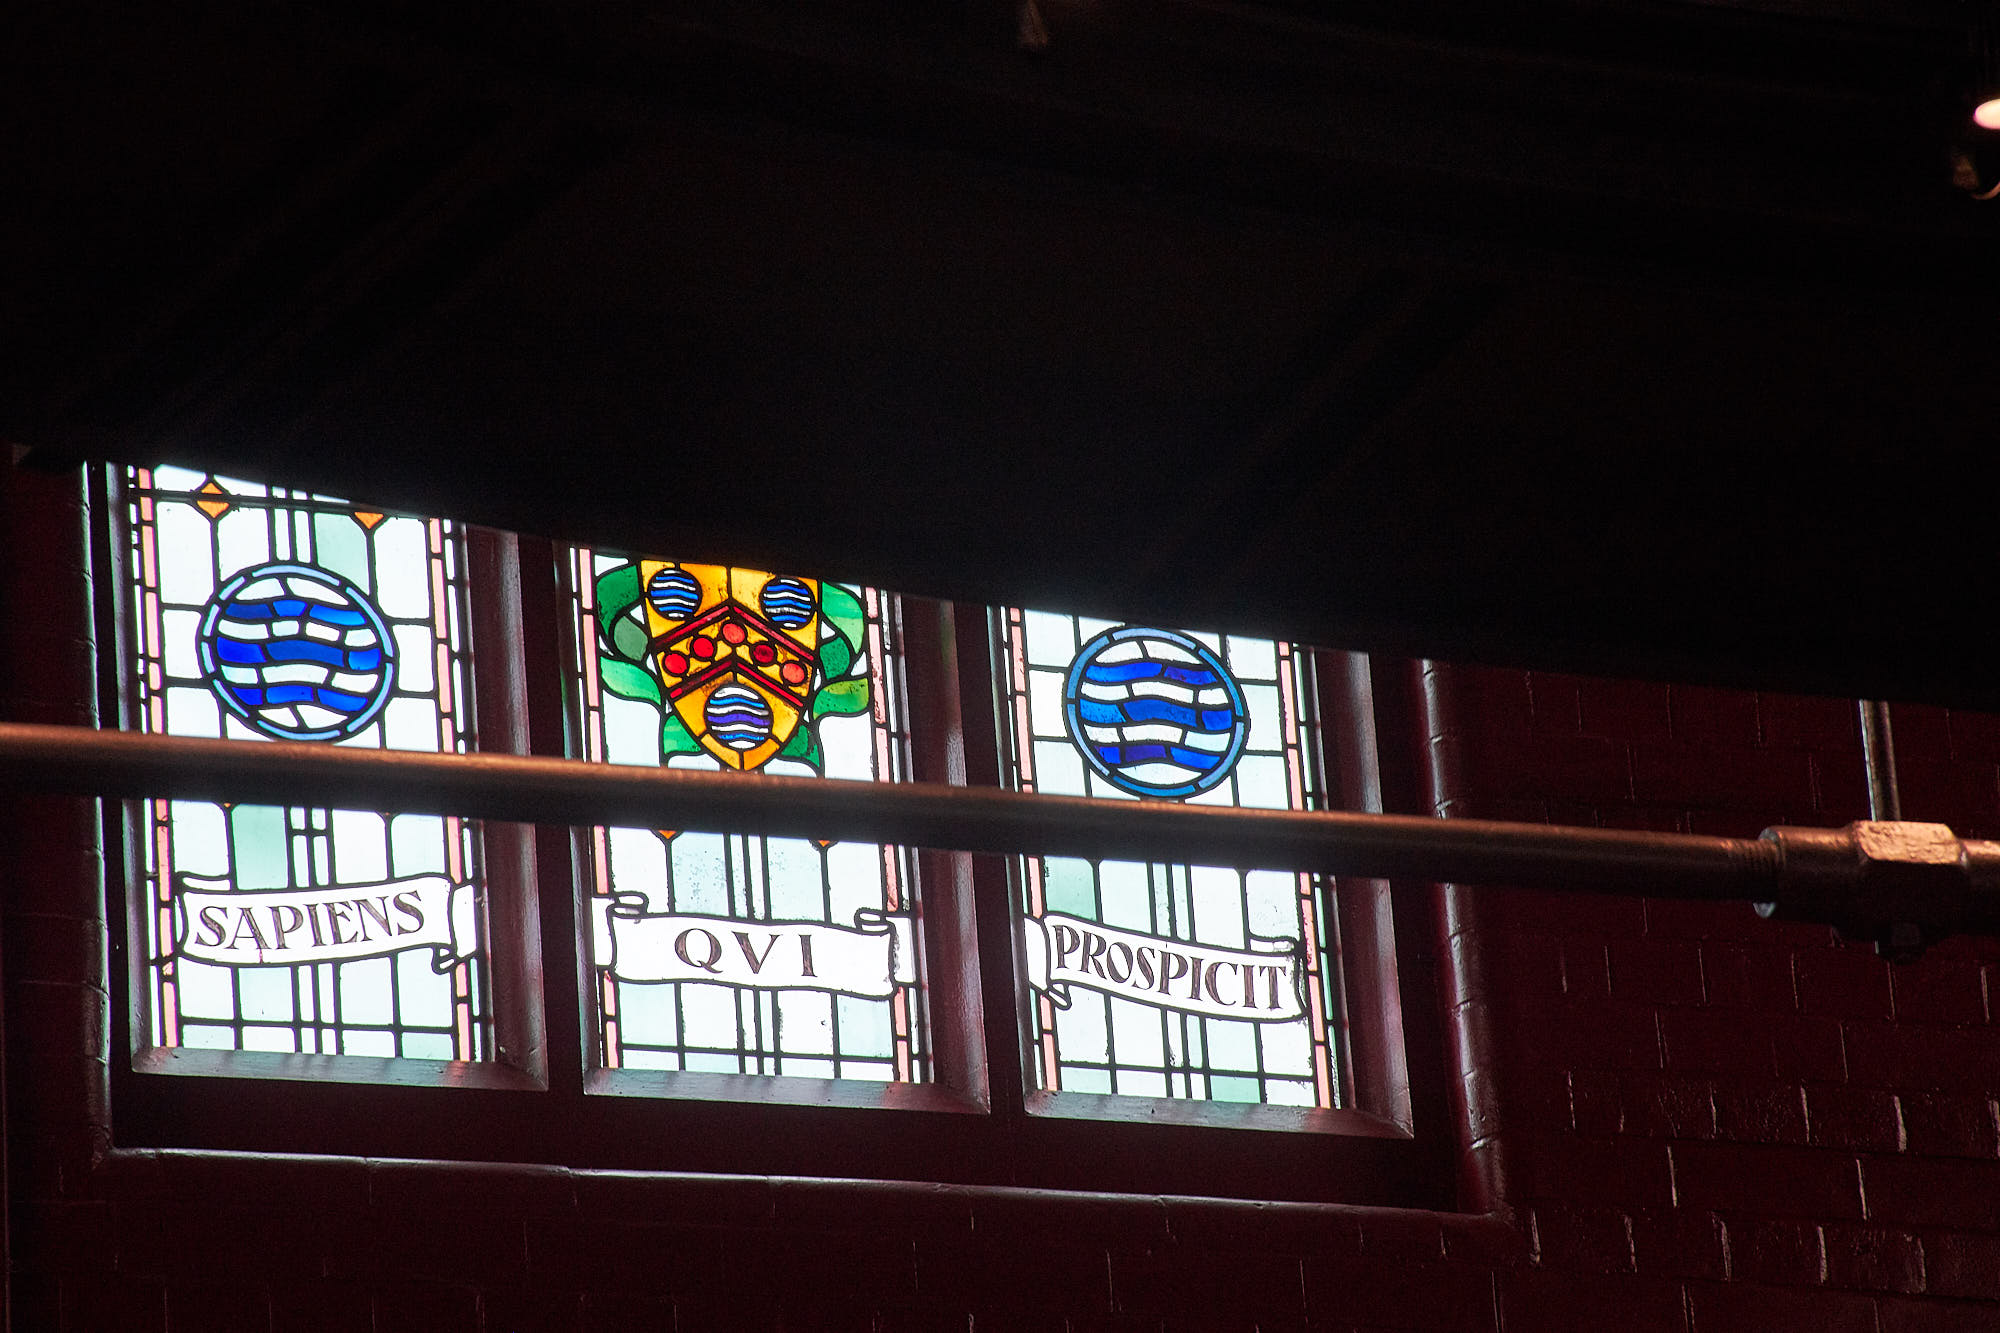 Image of stained Glass windows in the Rogers Theatre